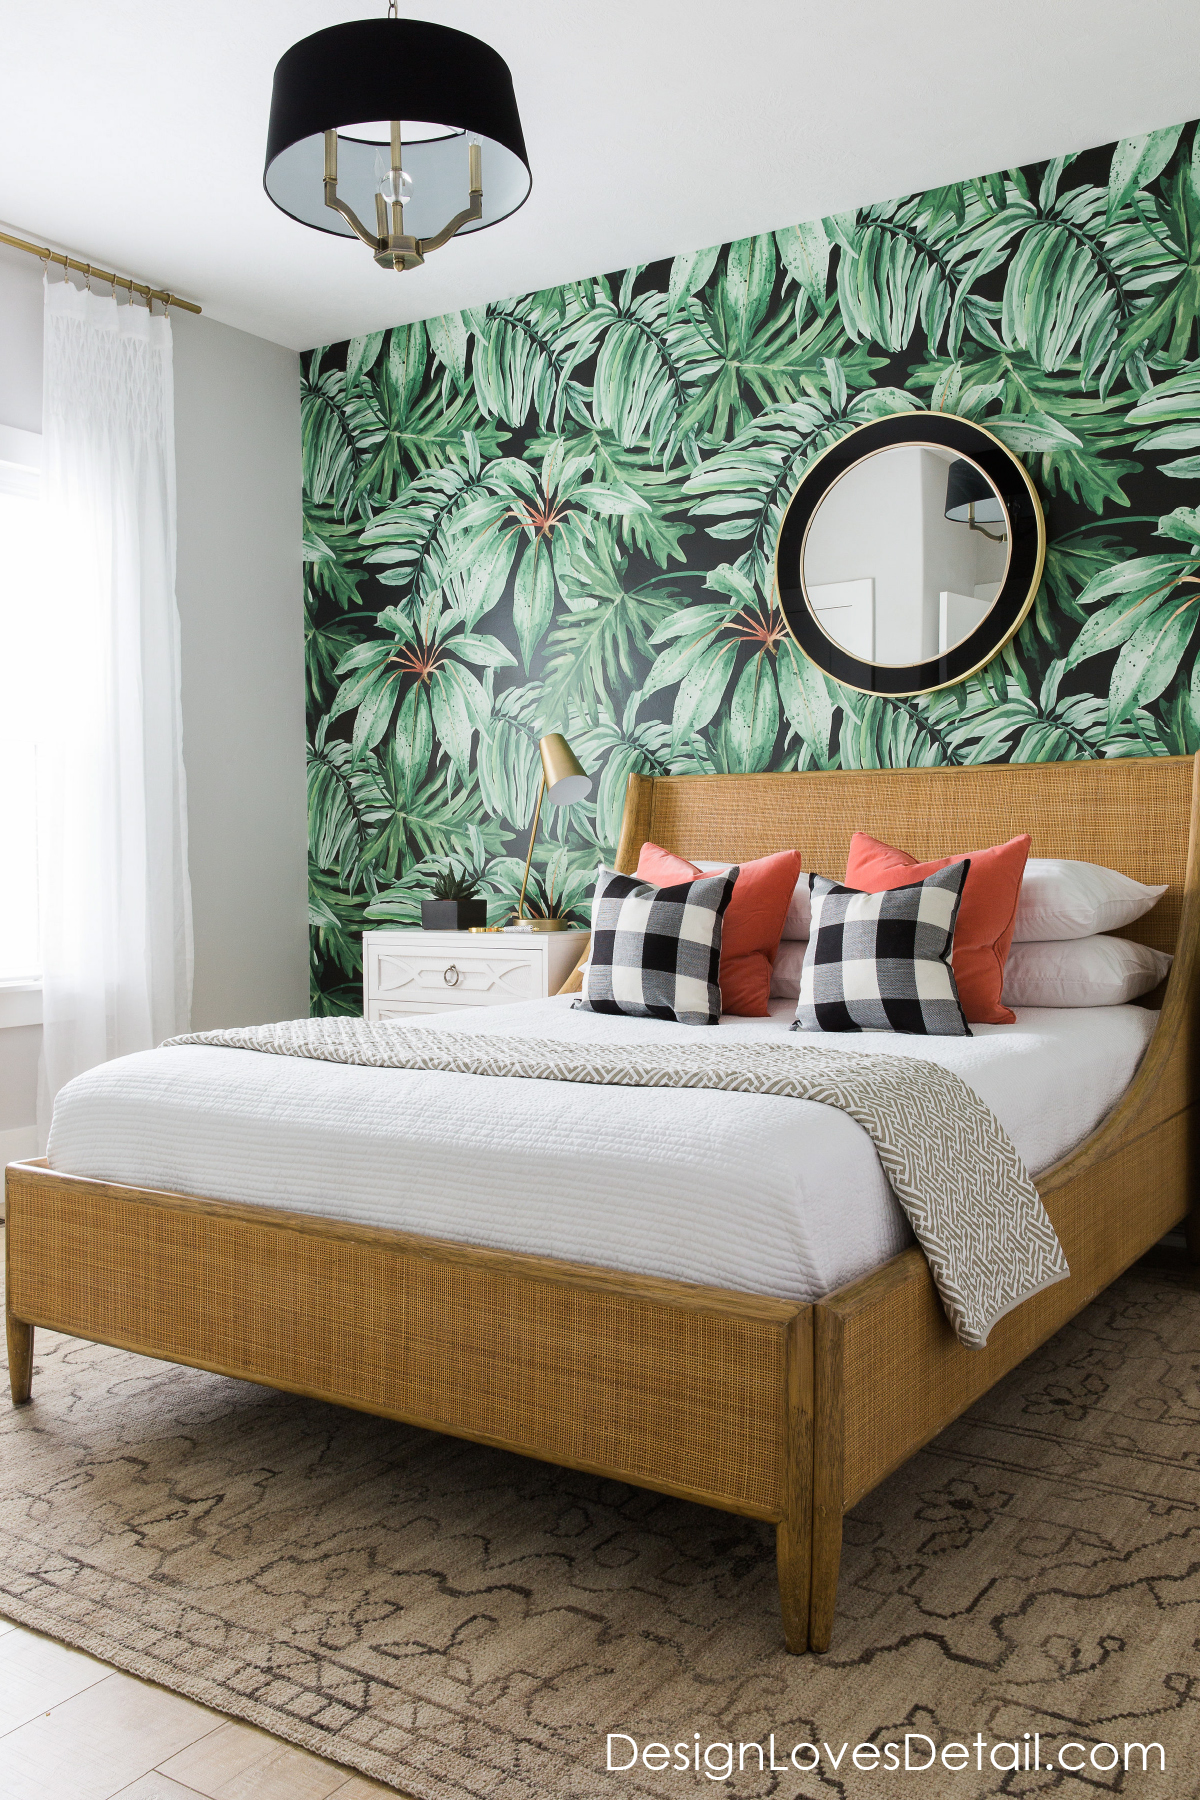 A Tropical Jungle Paradise Love This Guest Room Design Cool Wallpaper By Designlovesdetail